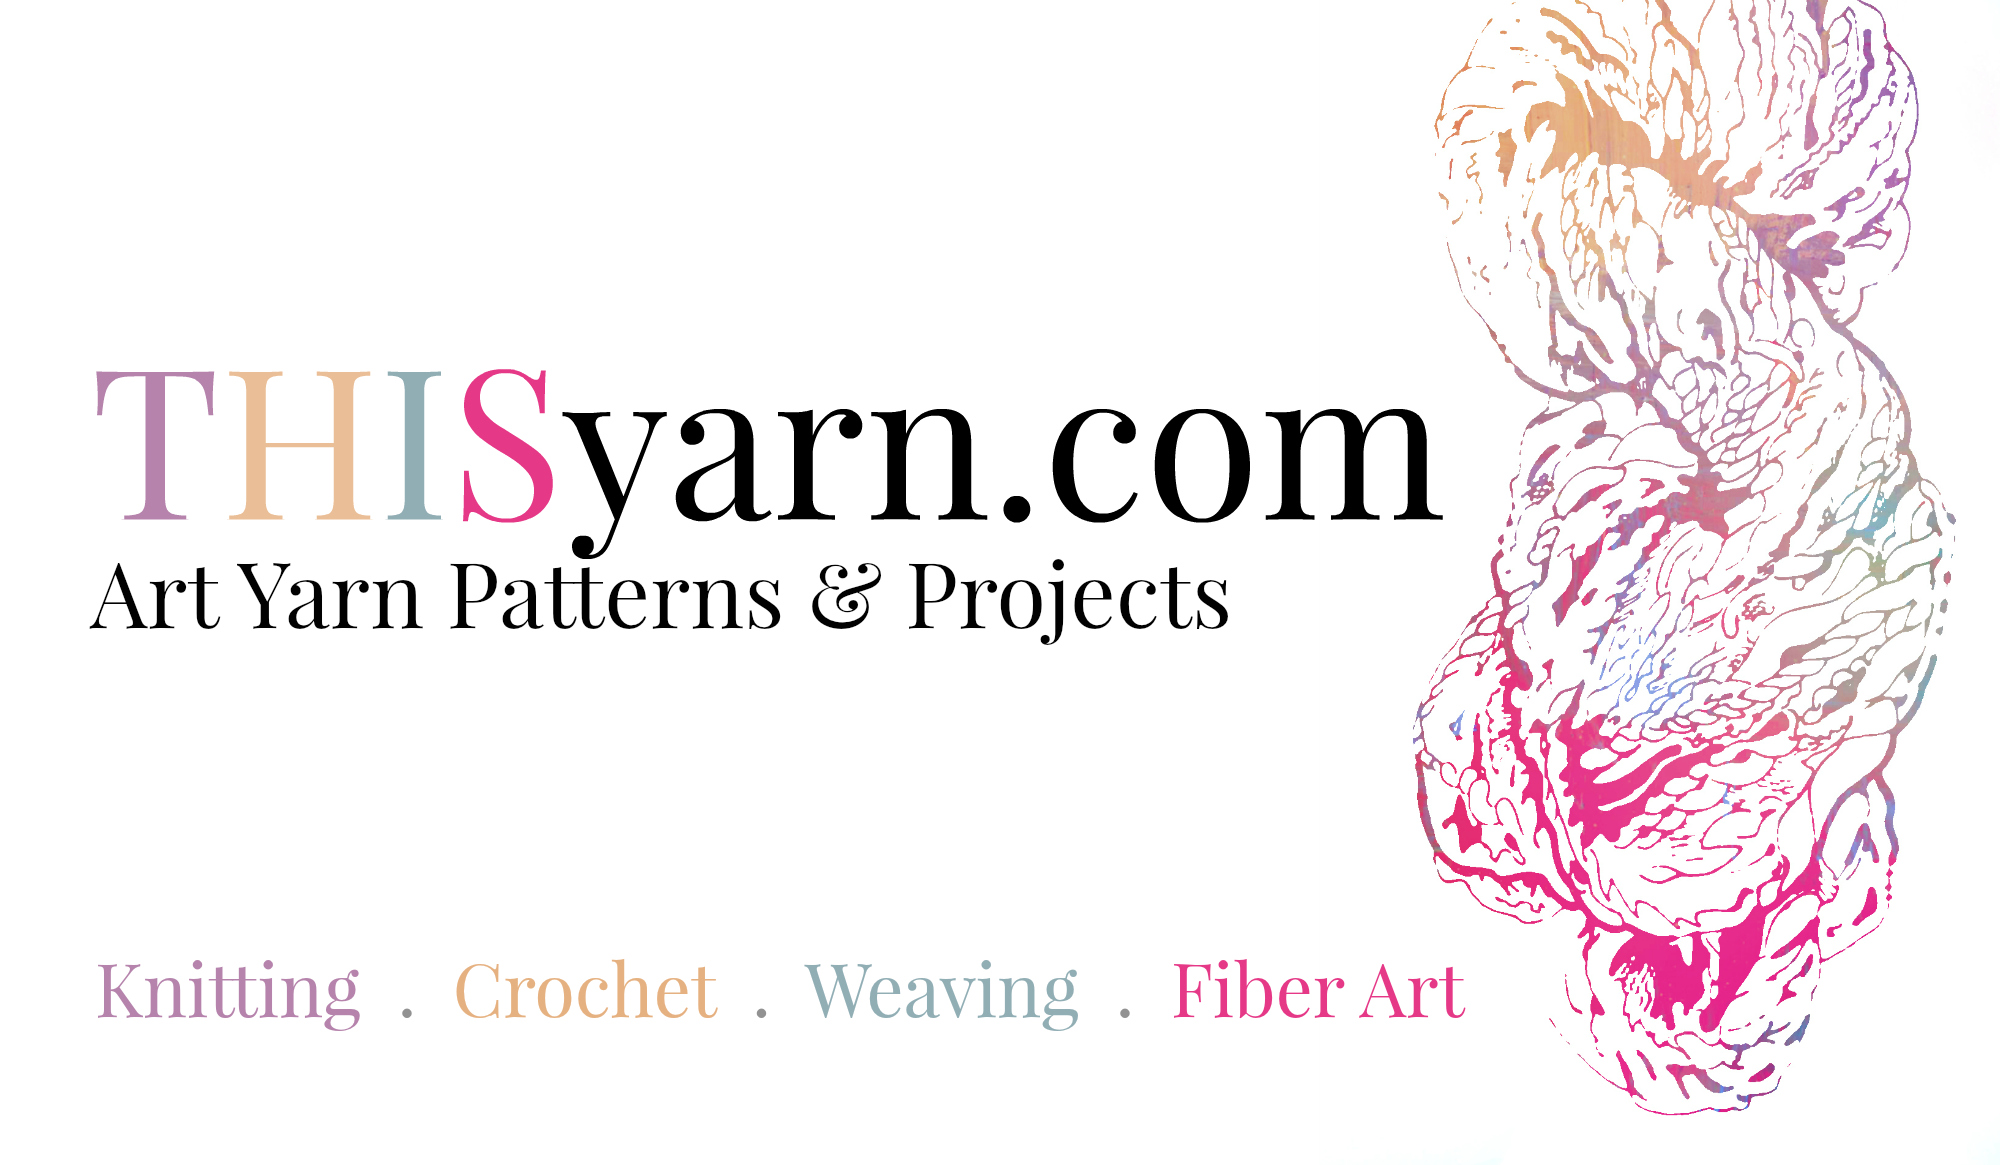 THISyarn standard sized business card (click to download high res)